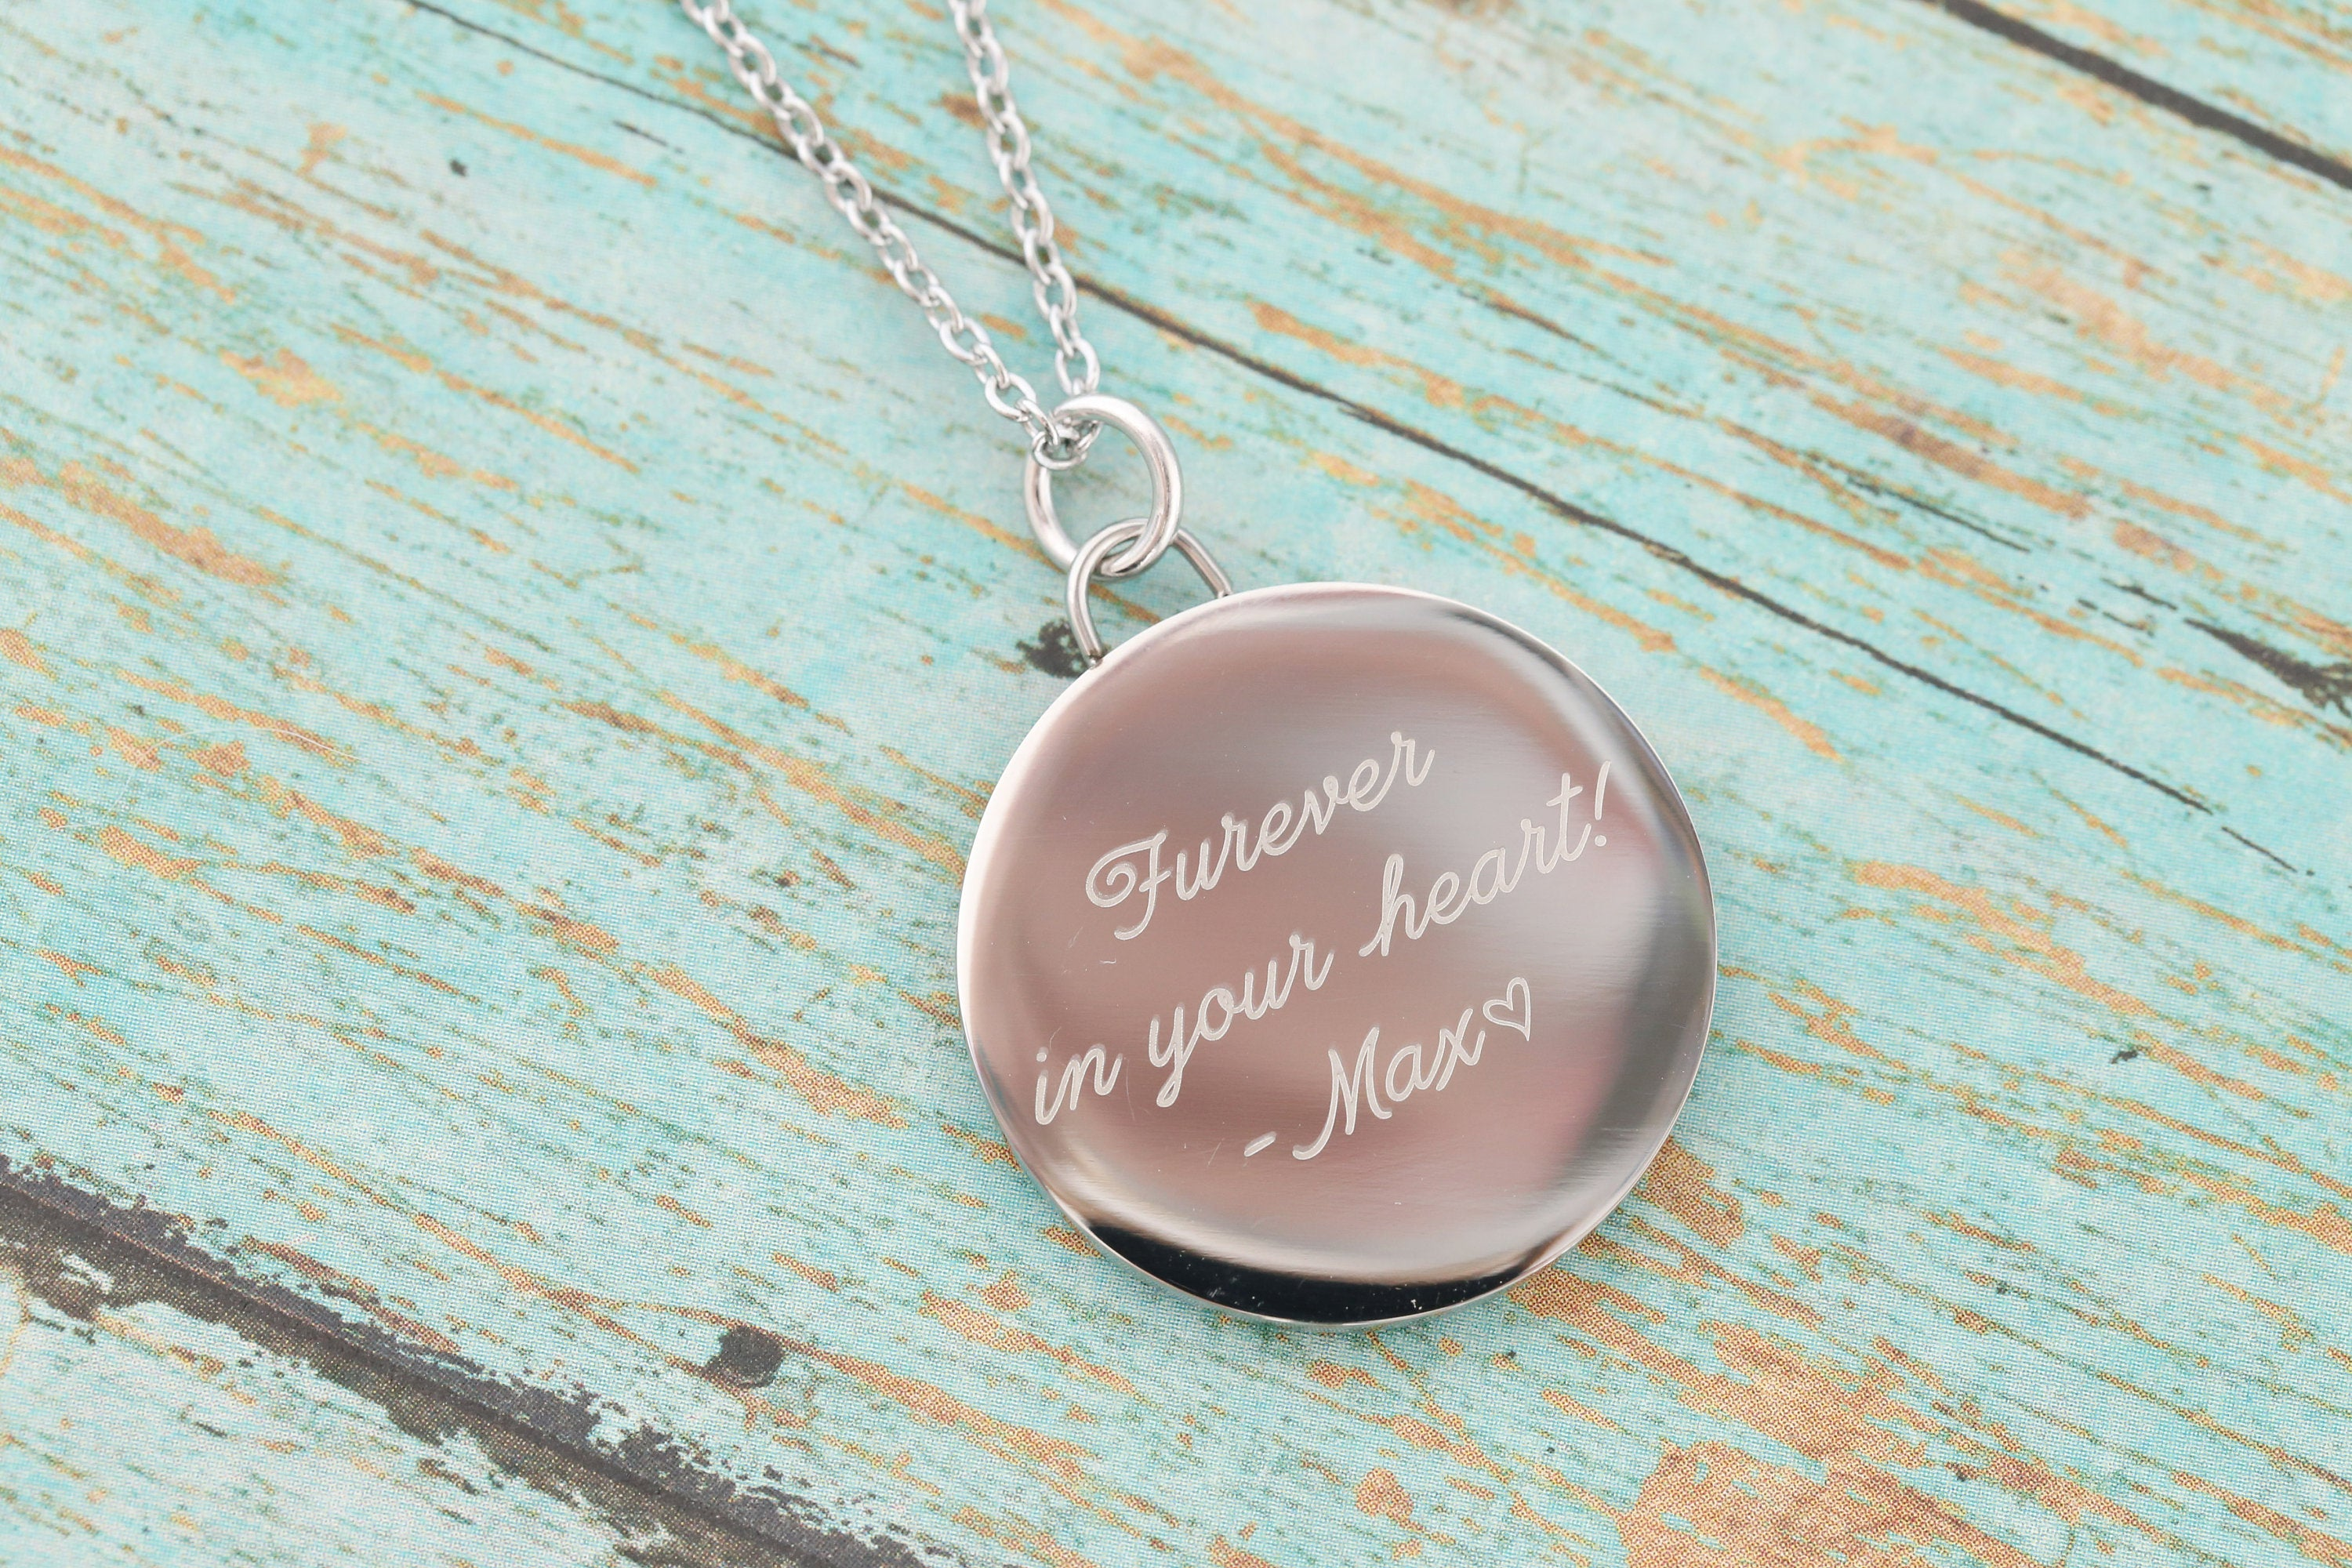 Cremation Pendant - Stainless Memorial Pendant for Ashes - Cremation Jewelry - Engraved Jewelry - Urn Necklace - Pet Memorial - Ash Necklace